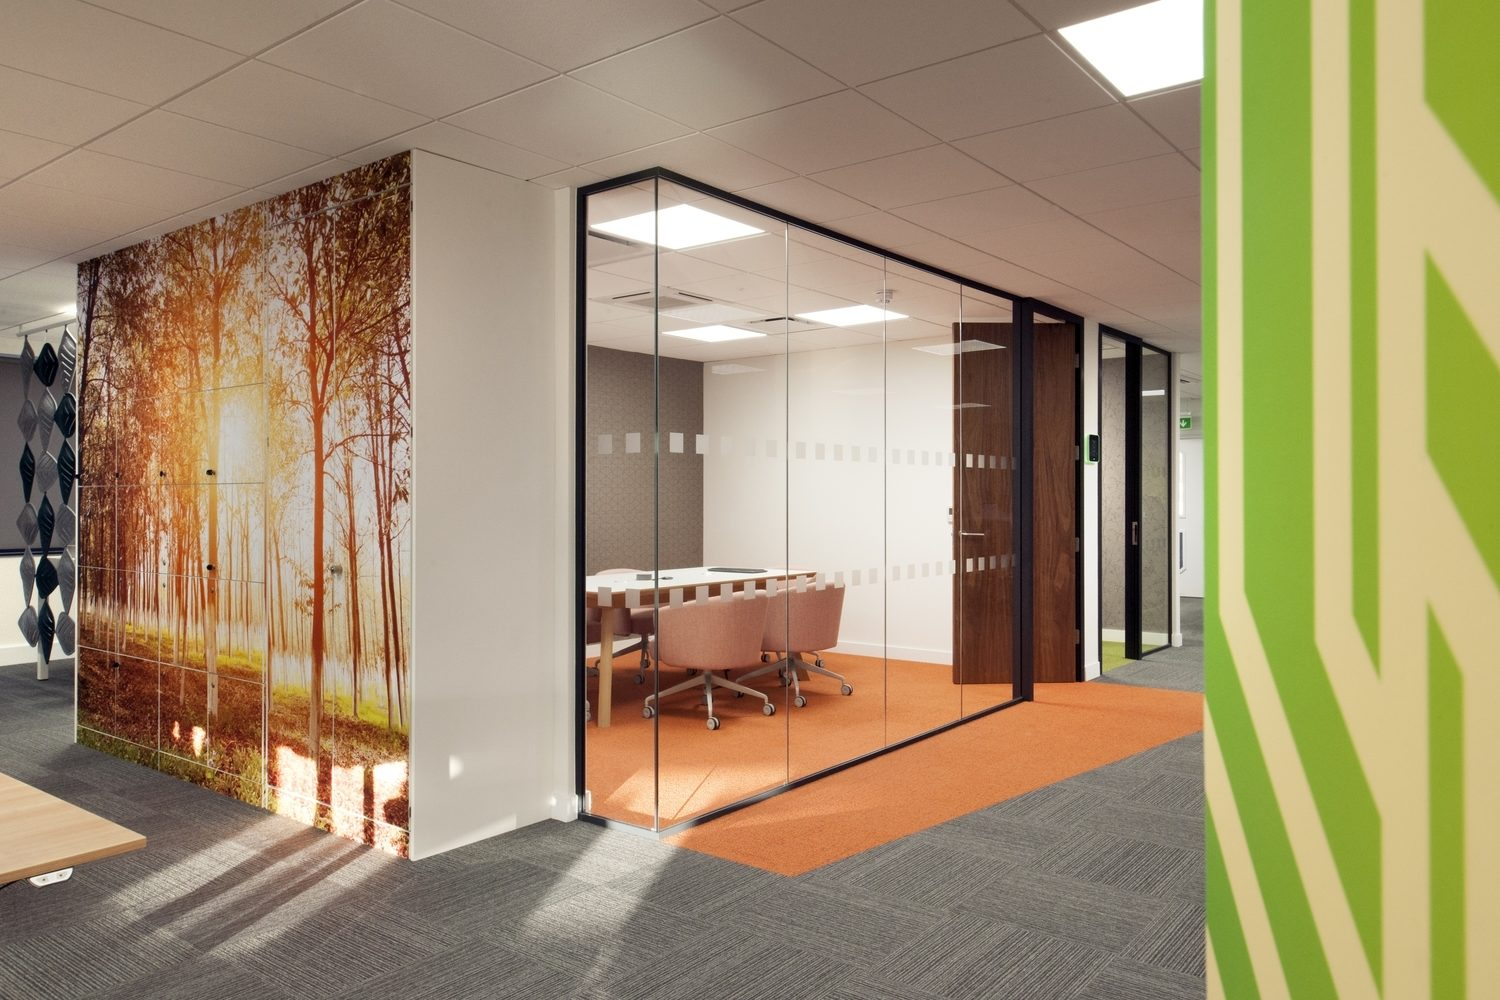 Housing Solutions casual meeting space design